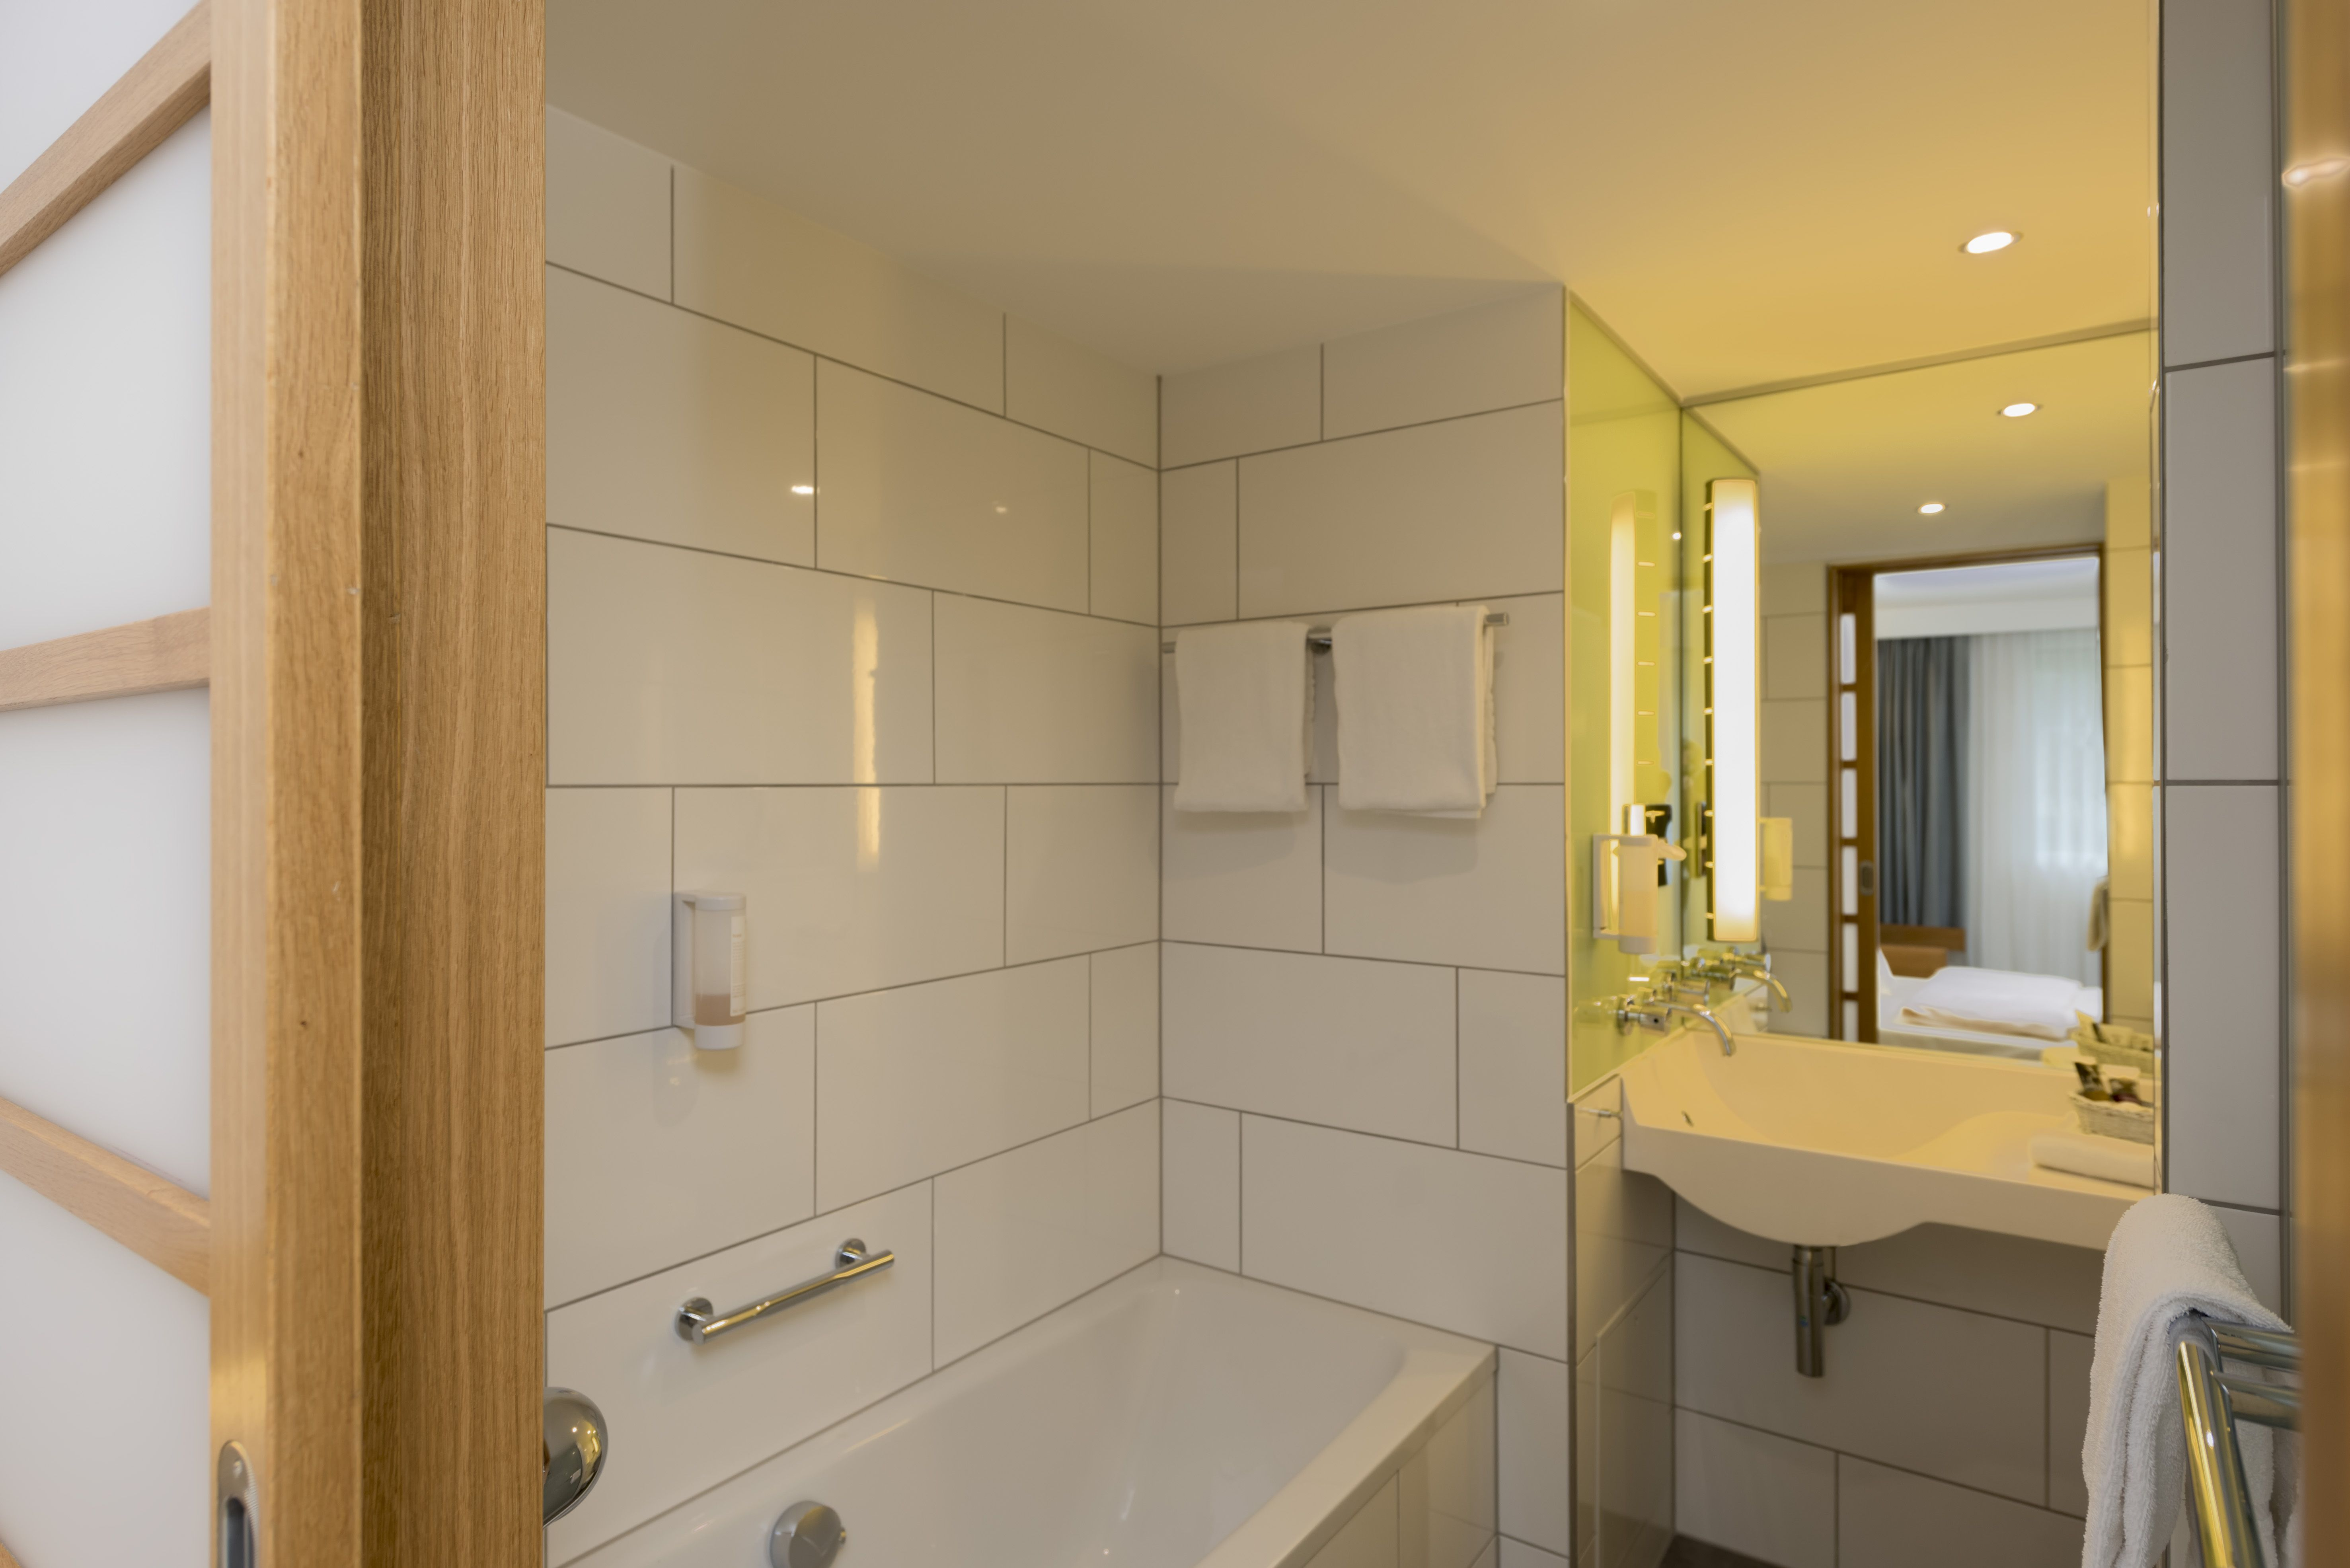 In The 100 Rooms Of Our Saarbruecken Hotel Modern Comfort And Contemporary Design Awaits You And Makes You Feel At Home For Your Vacation In Saarbrucken Hotel